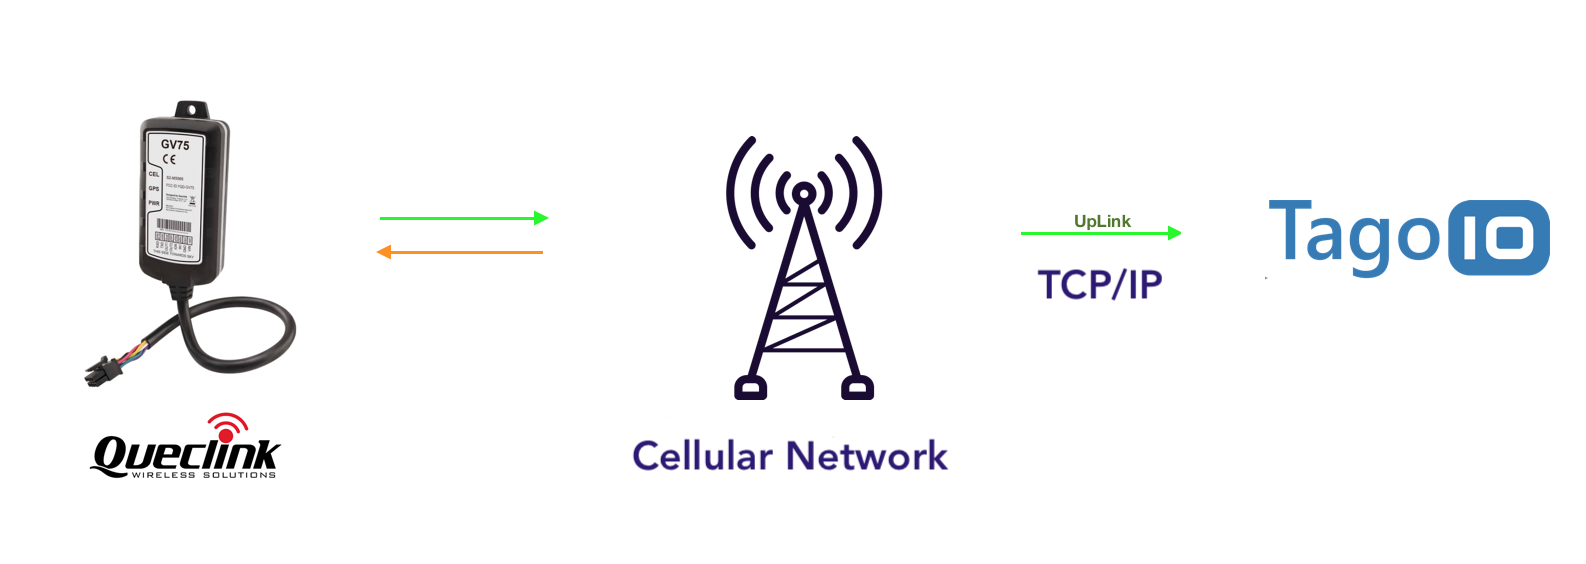 Queclink + Cellular + TagoIO  diagram